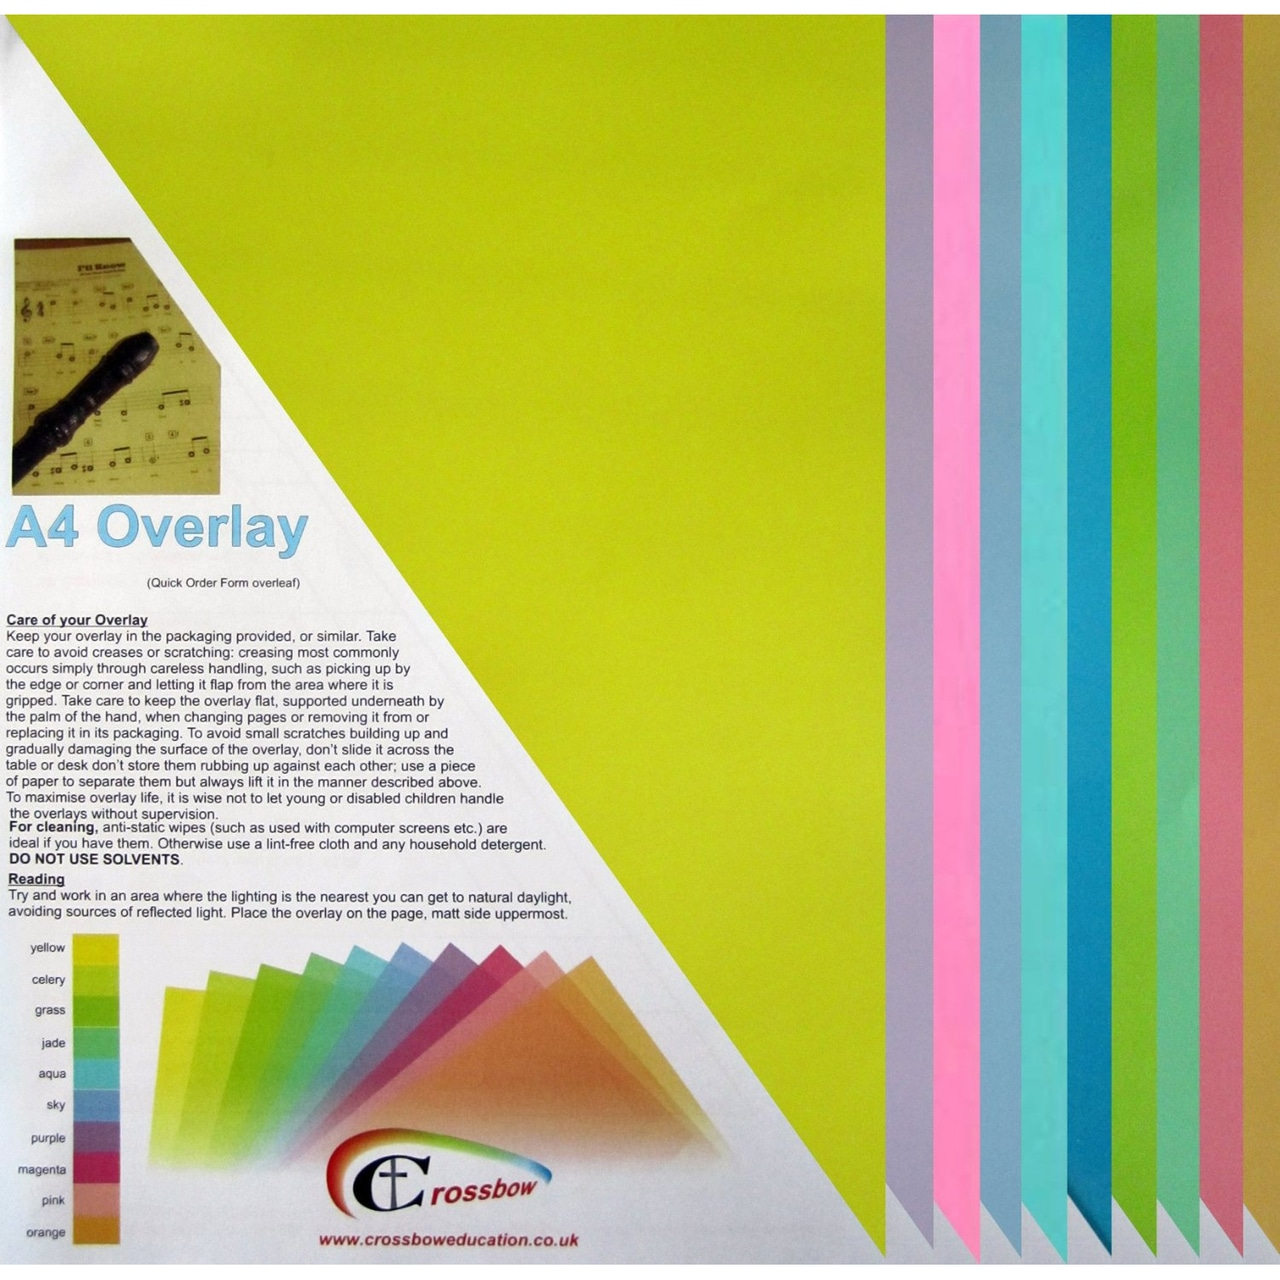 Top tips for creating Dyslexia friendly print materials.